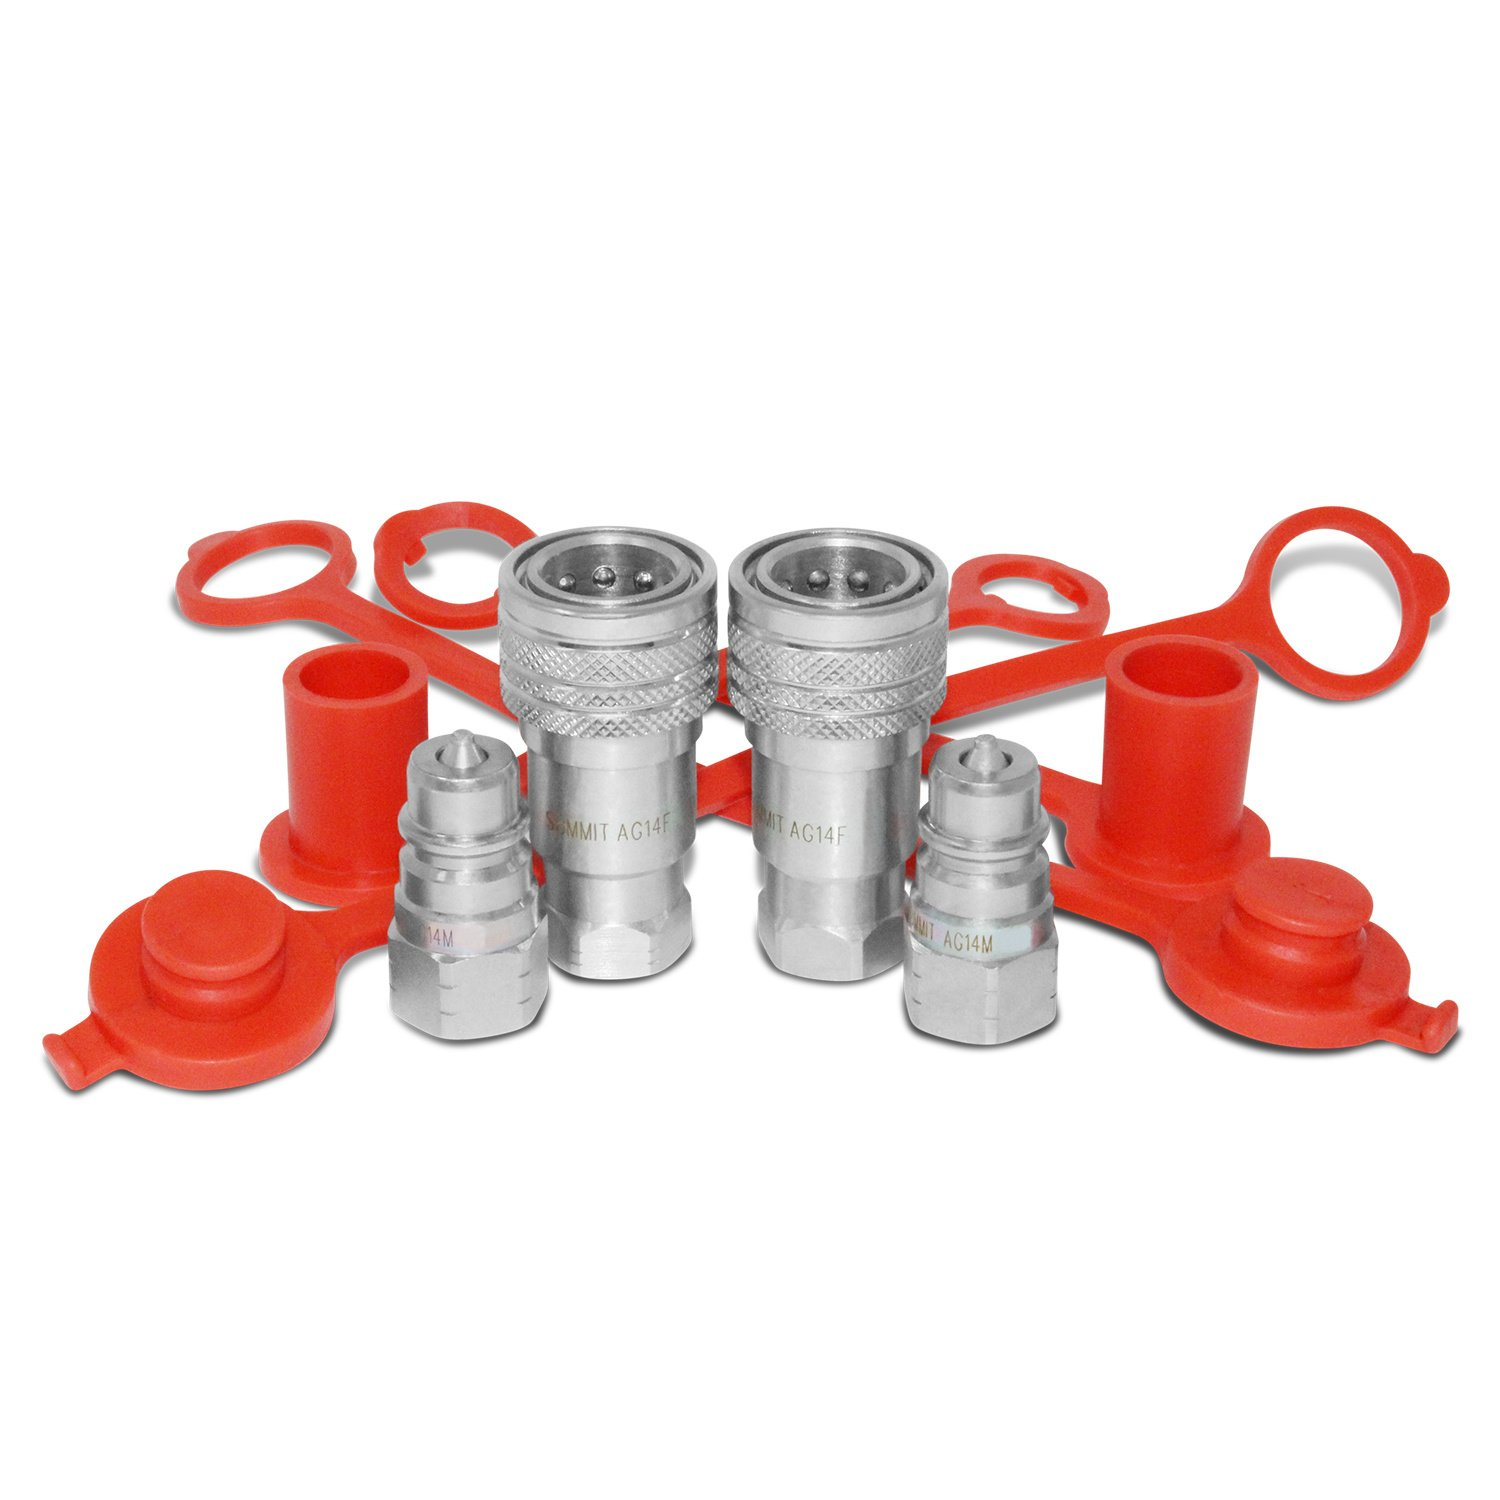 1/4'' Ag ISO 5675 Hydraulic Quick Connect Couplers, 3/8'' SAE (9/16''-18 ORB) Thread, 2 Sets